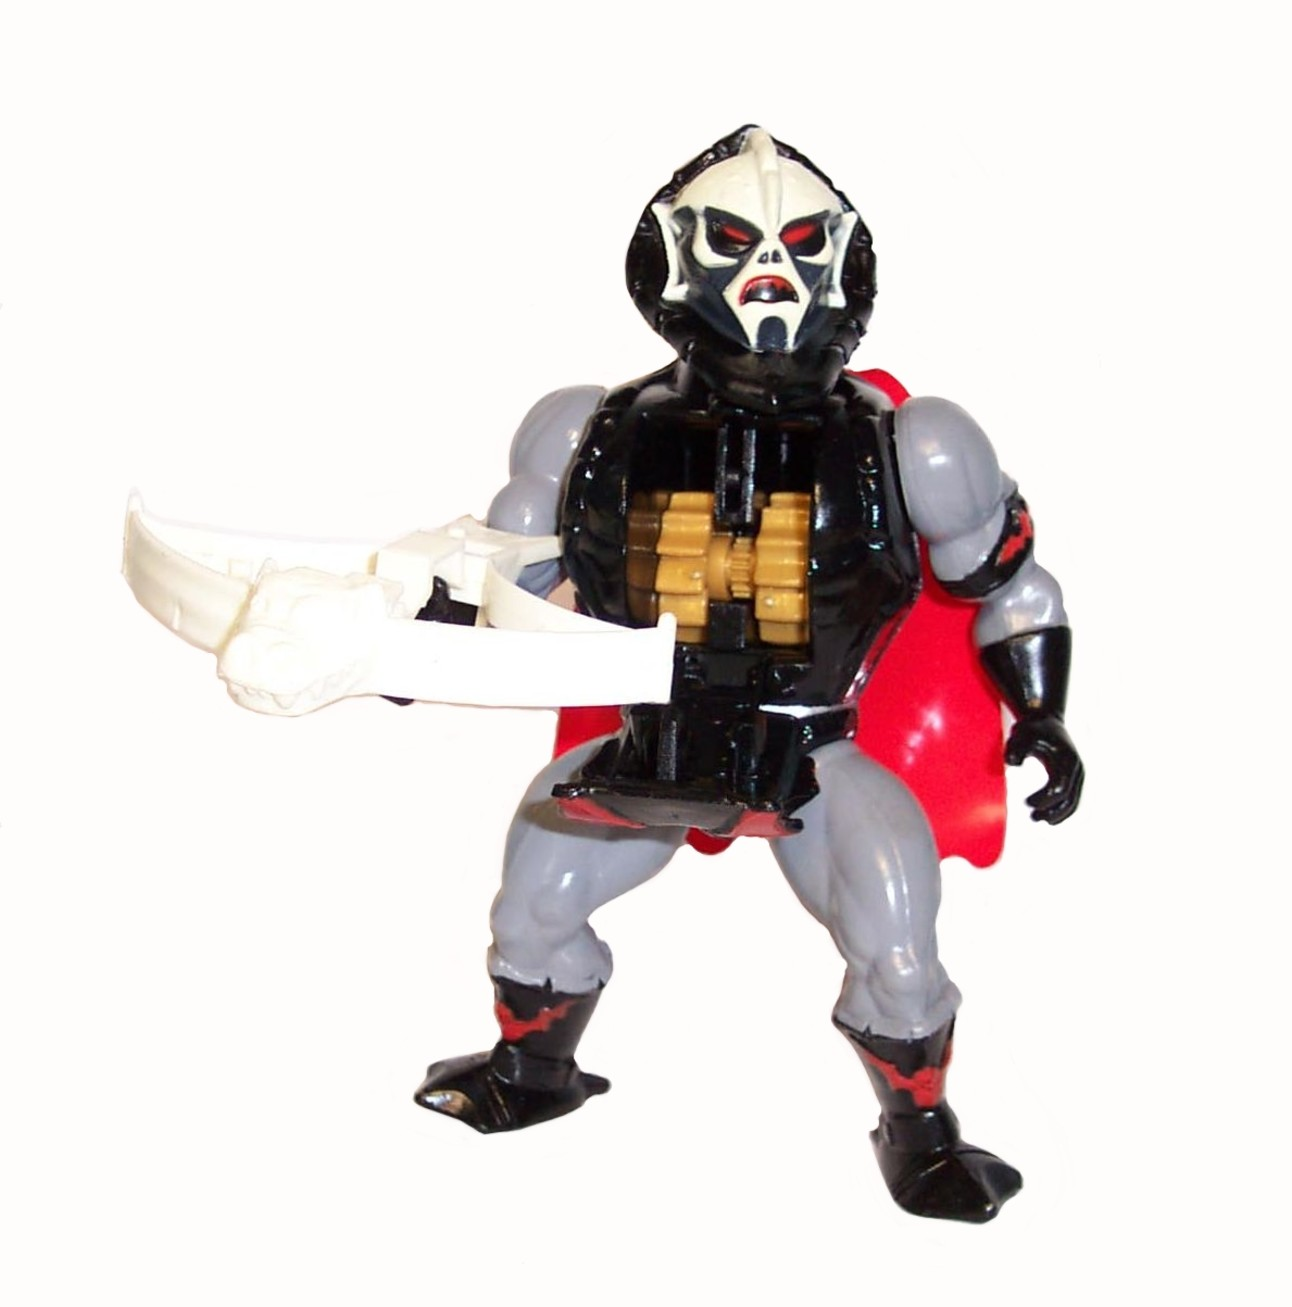 Buzz_Saw_Hordak.jpg